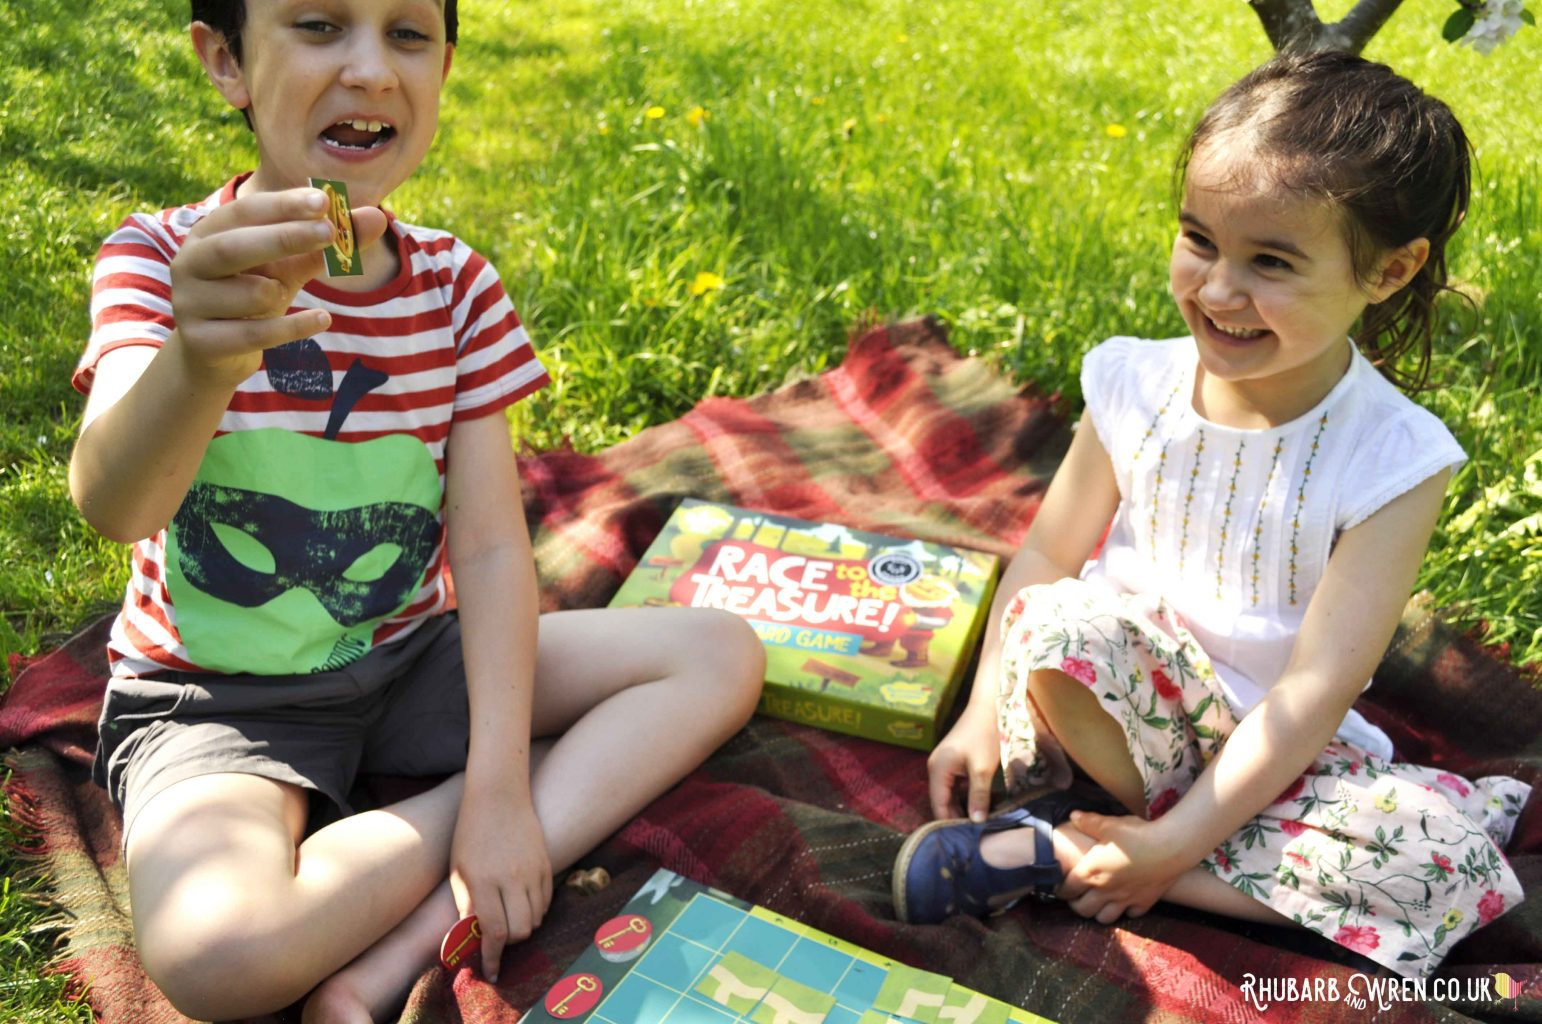 Children laughing playing Peaceable Kingdom board game 'Race to the Treasure'